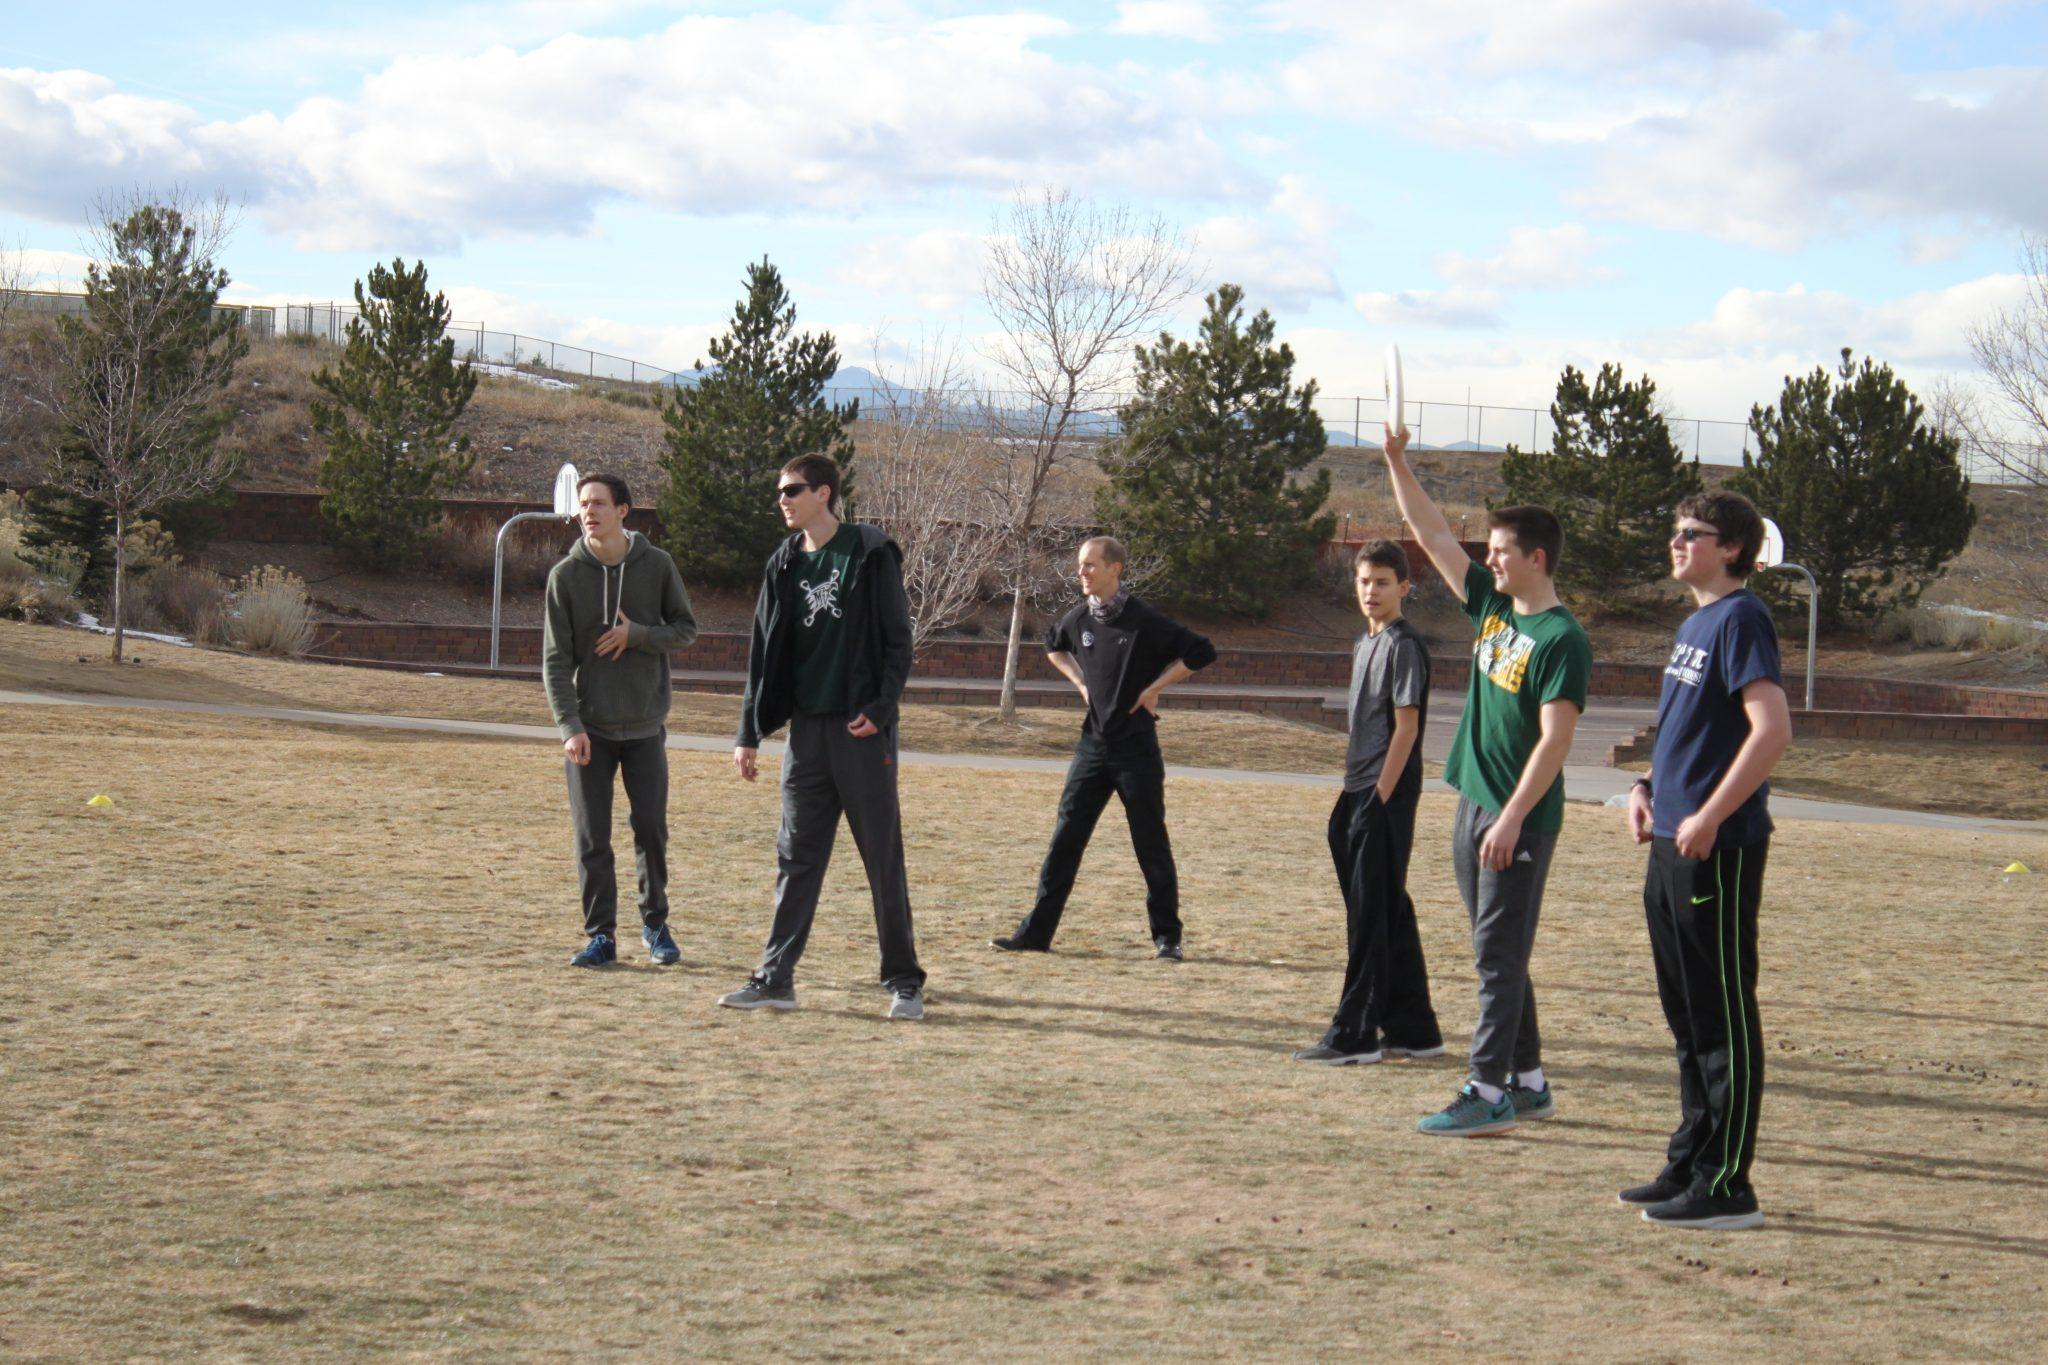 PHOTOS: ULTIMATE FRISBEE